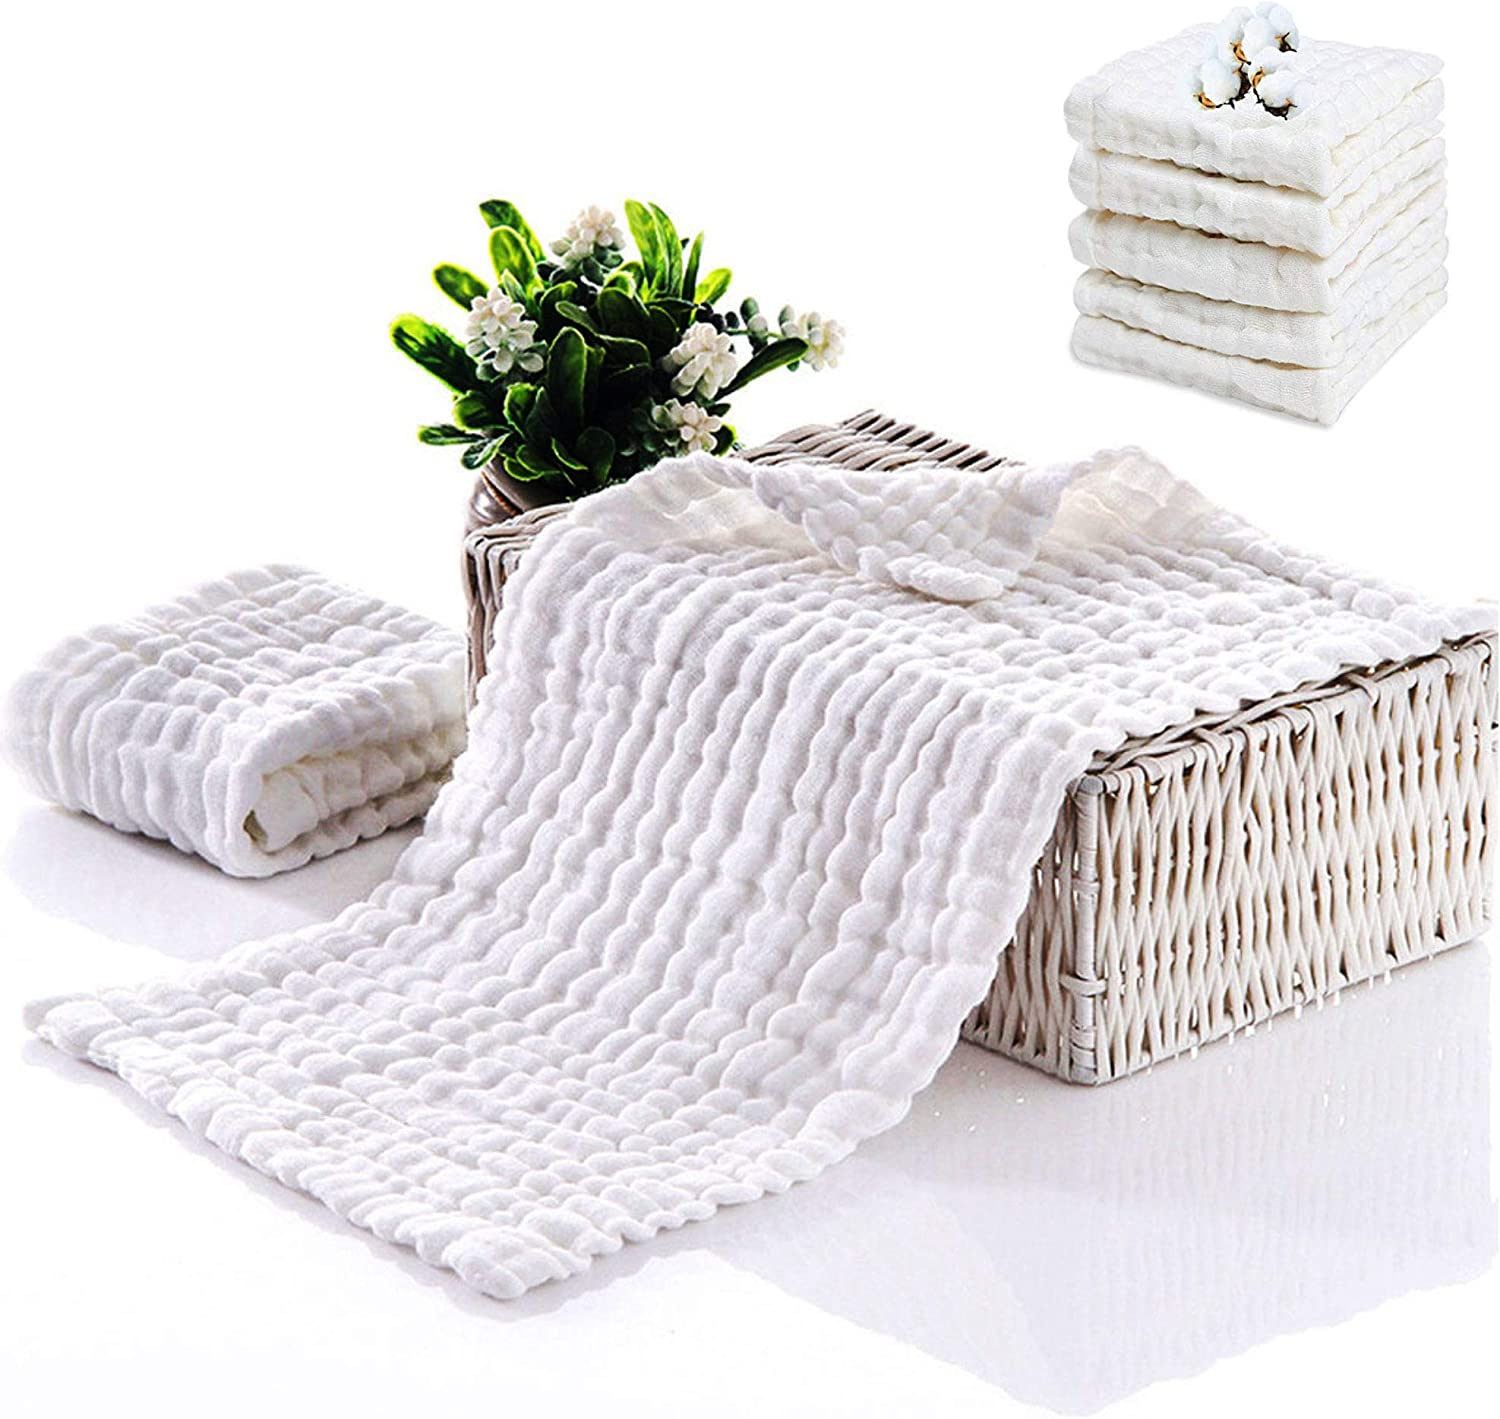 """Organic Bamboo White, Pack Of 8 Washcloths Extra Absorbent and Soft Burping Cloth Towel Wash Cloth Girl Boy by Comfy Cubs Baby Burp Cloths 8 Pack Large 20/"""" by 10/"""""""